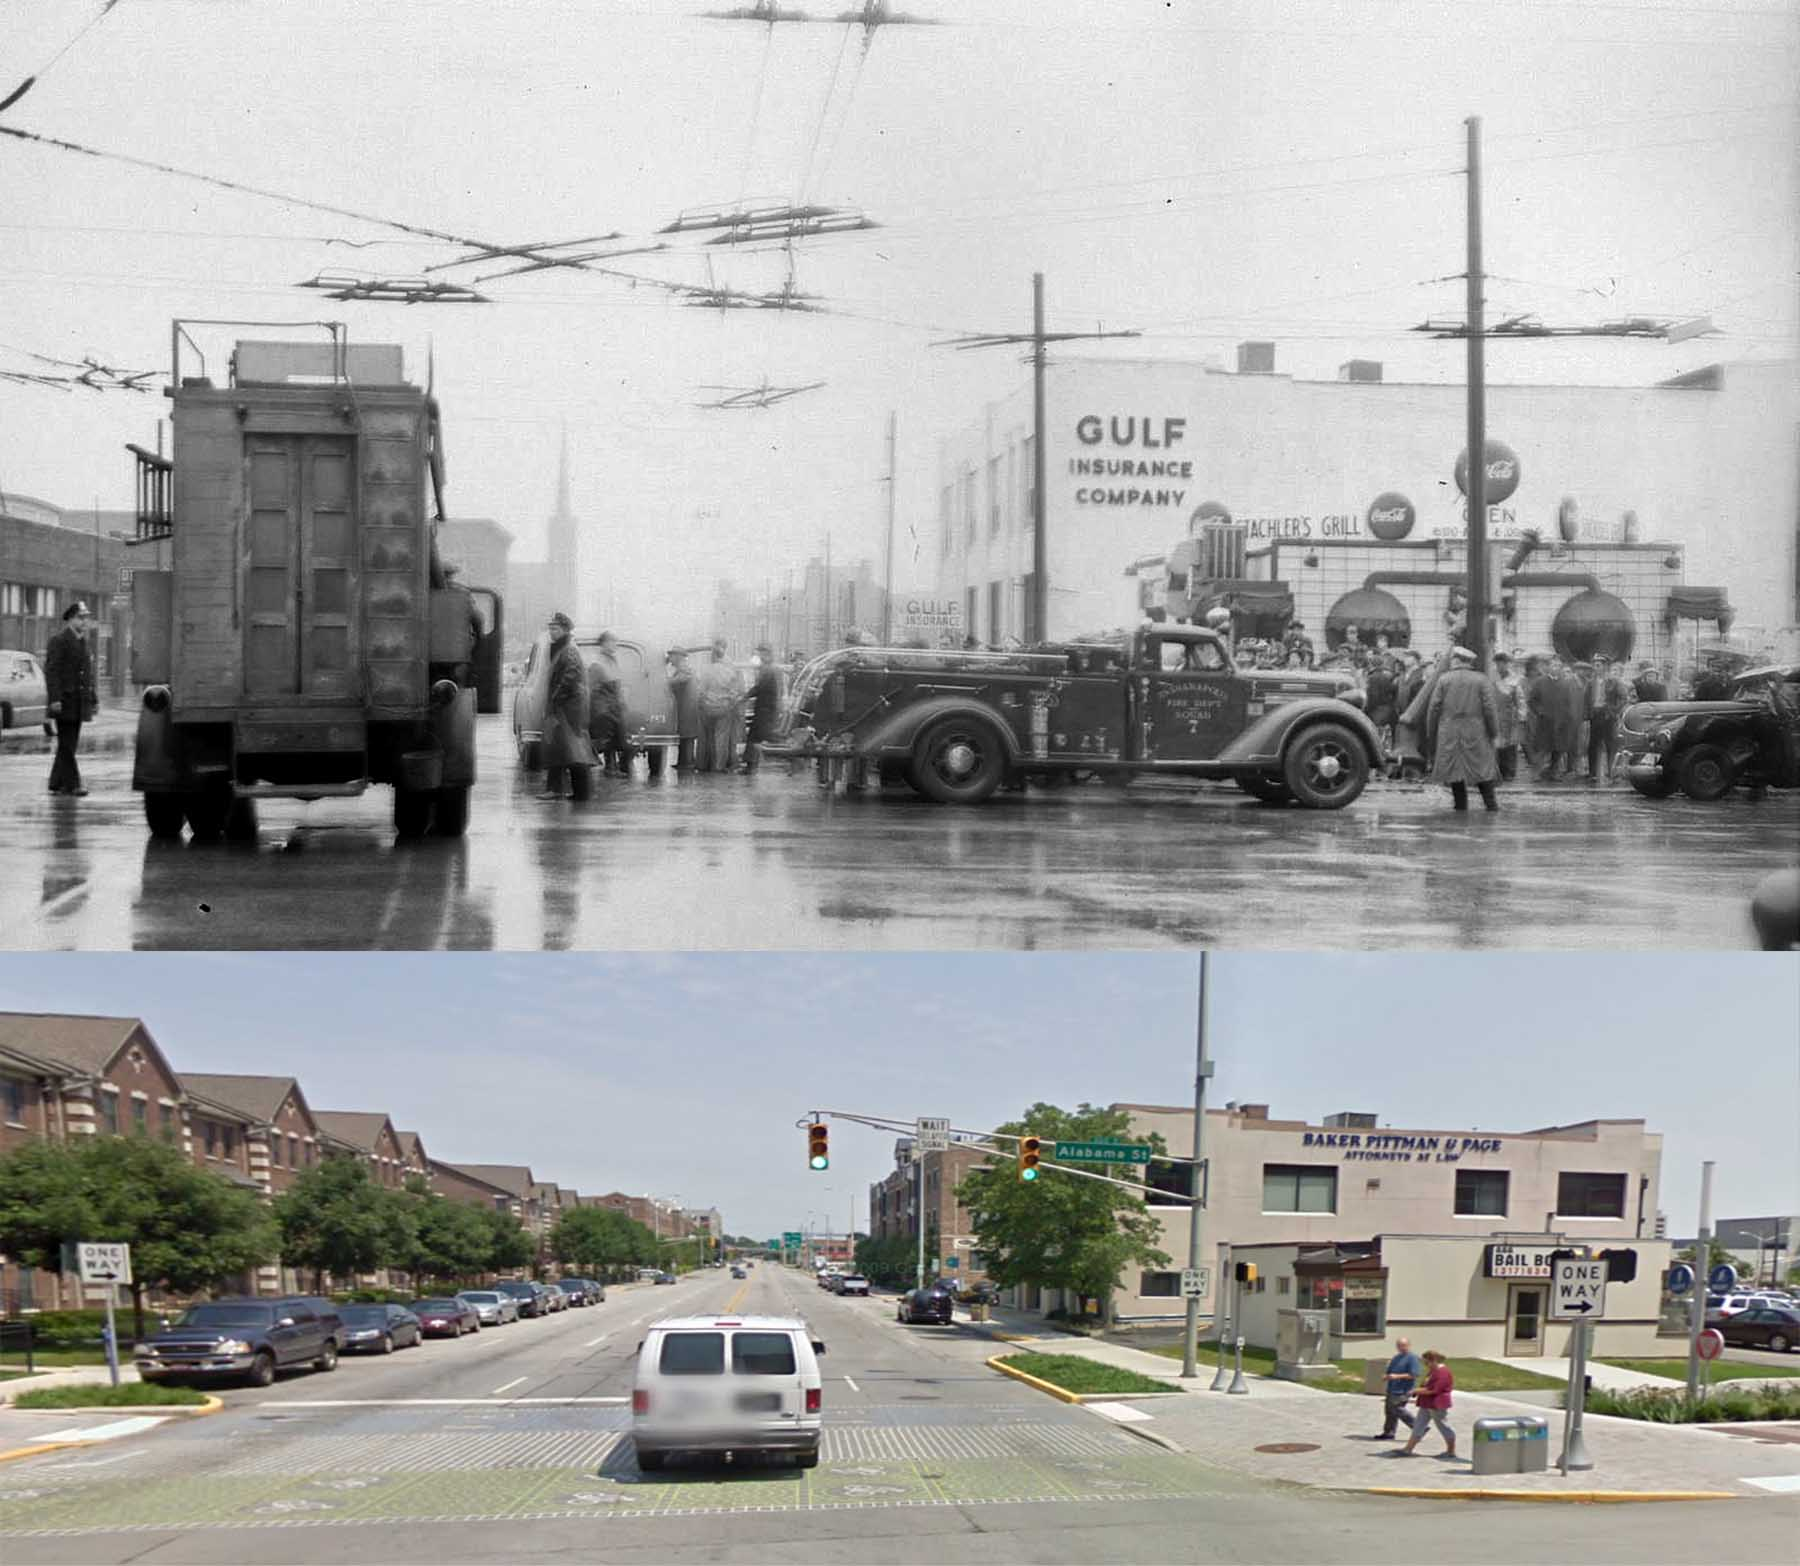 Then and Now: Ohio and Alabama Streets